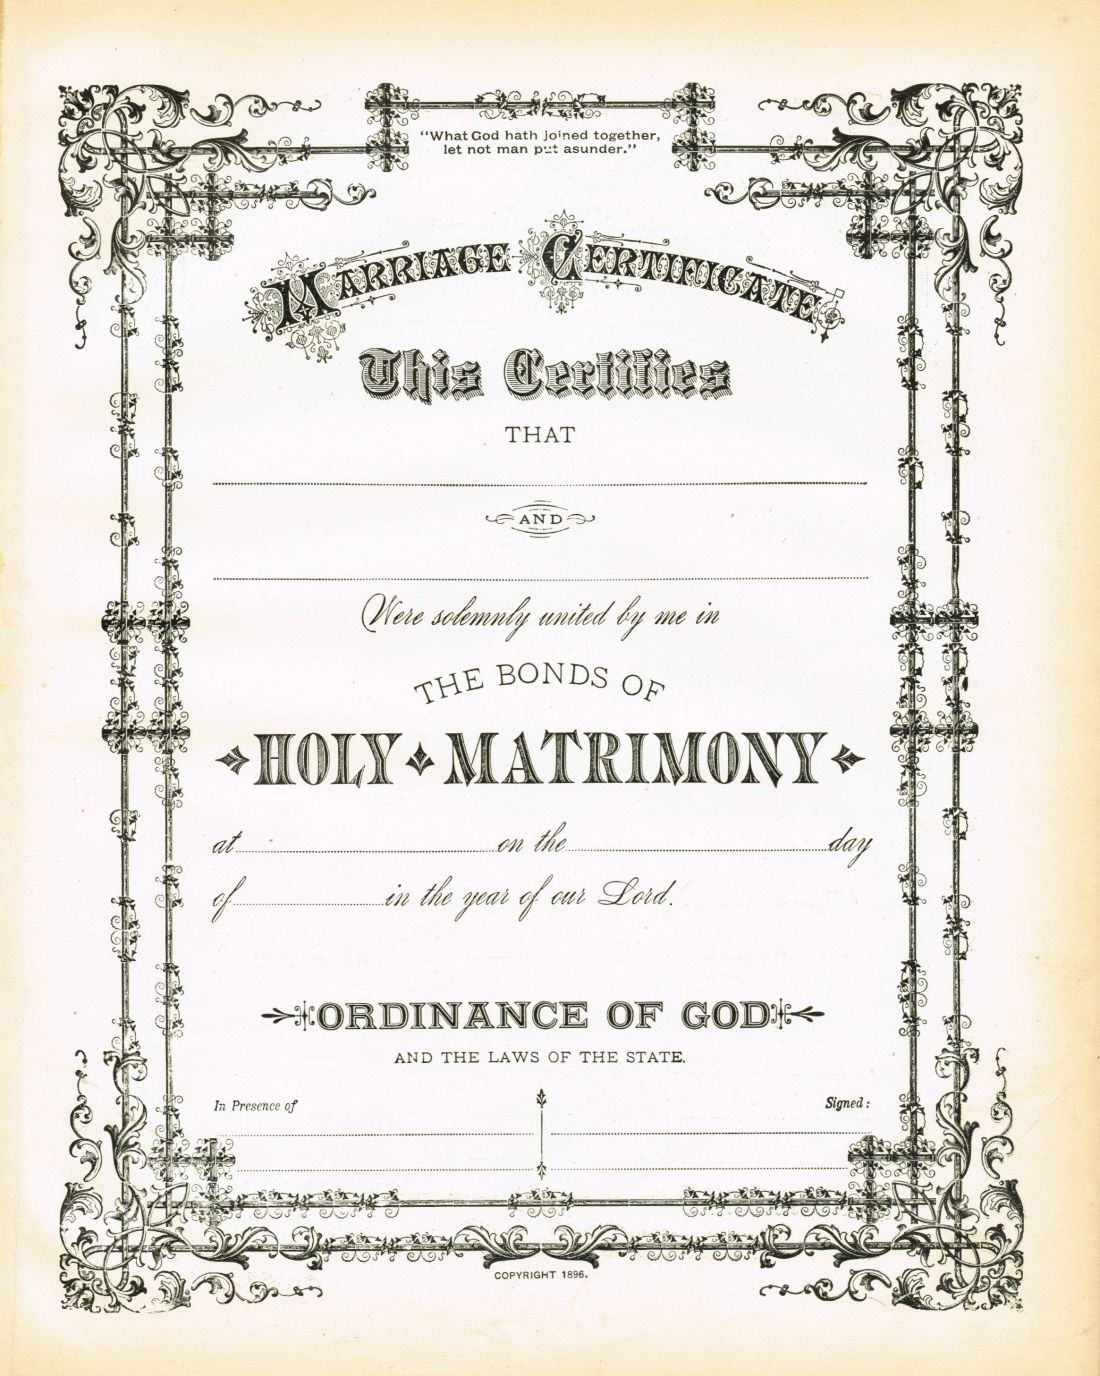 Antique certificate of marriage printable via knickoftime free printable antique certificate of marriage from the early 1900s from knick of time alramifo Image collections